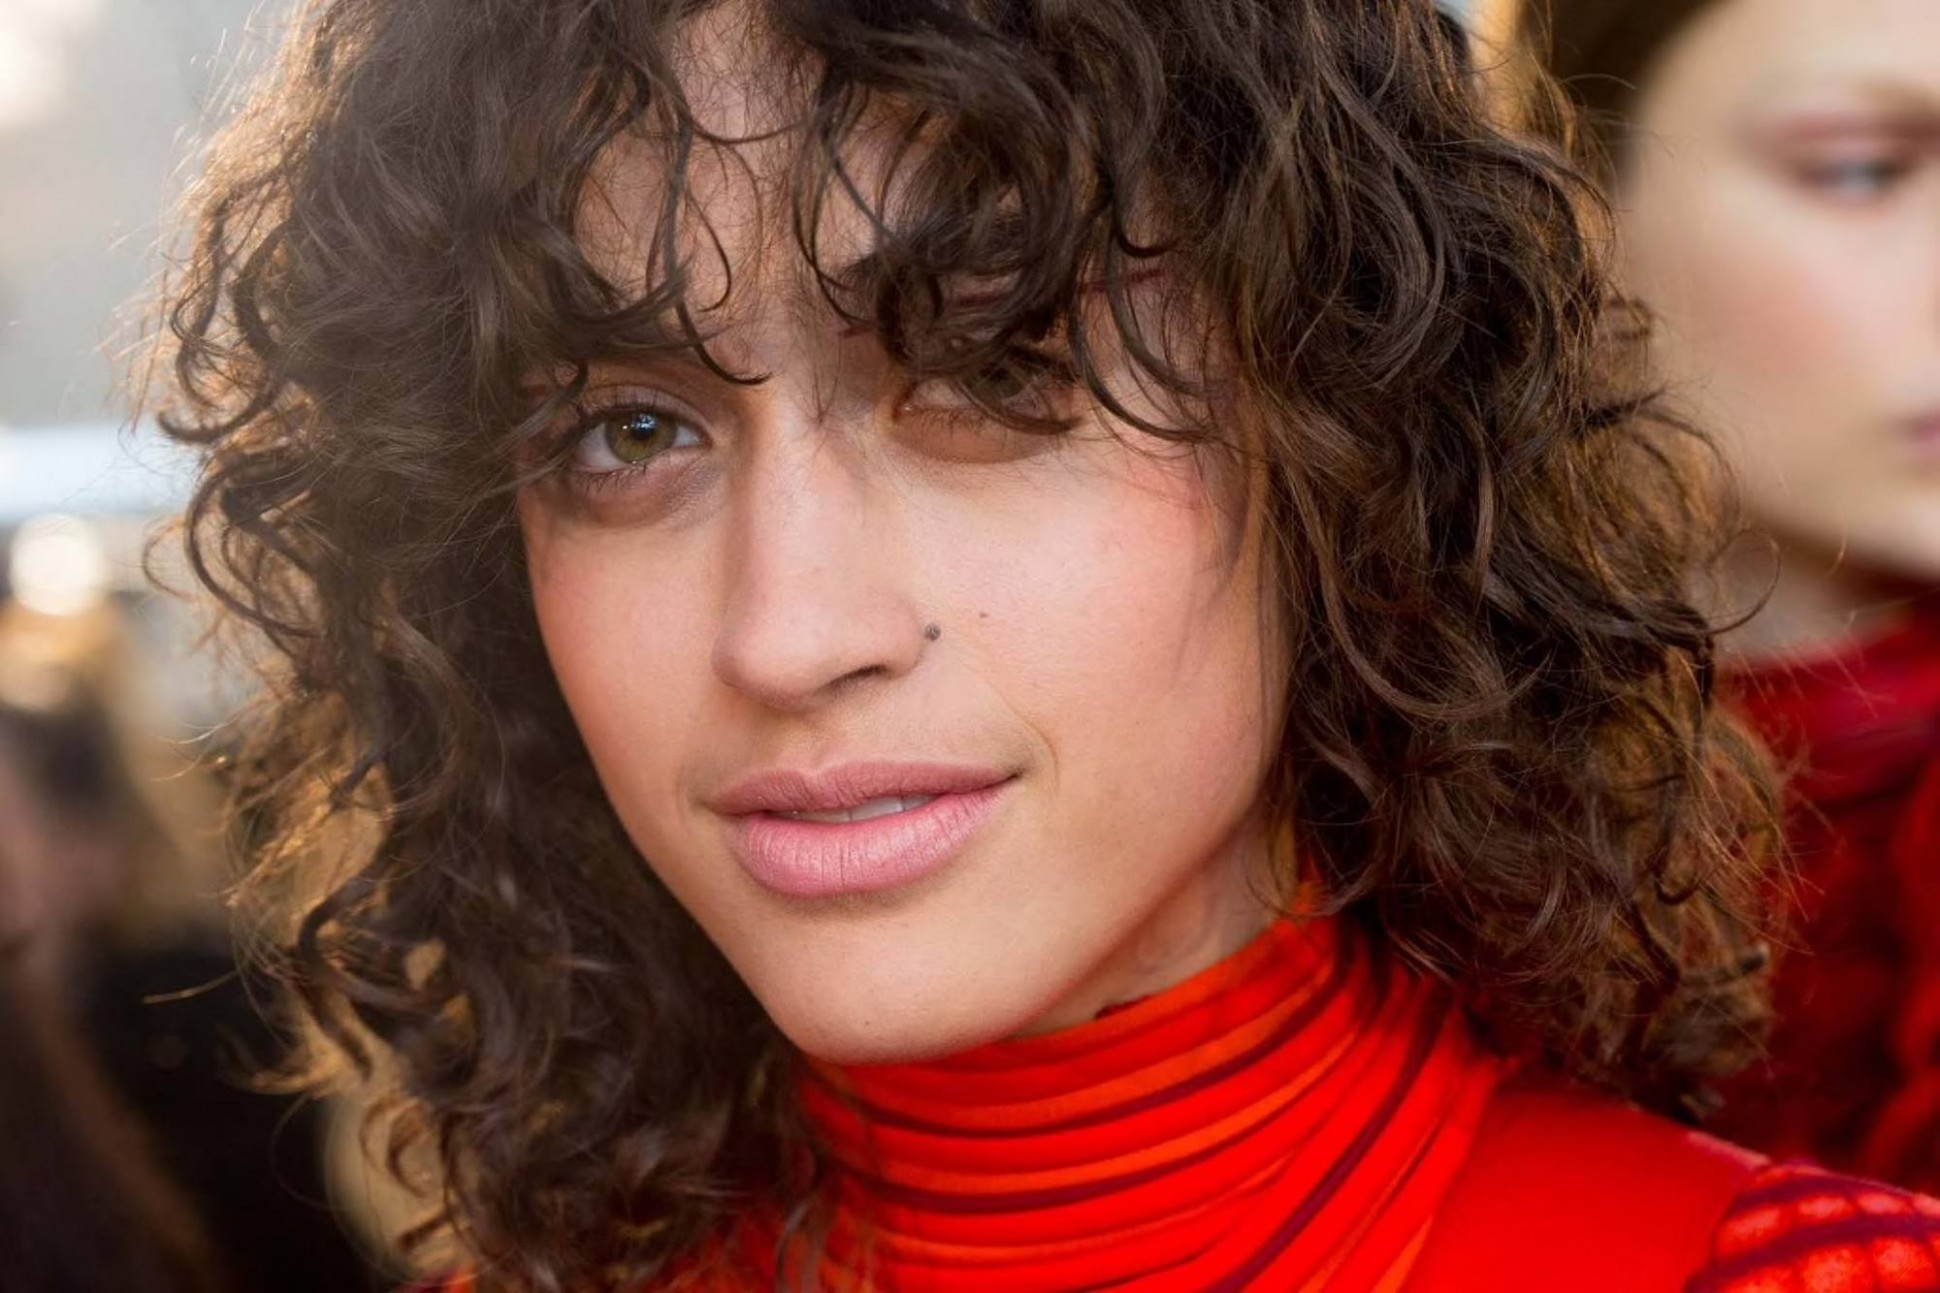 Curly Hair Bangs: 11 Trendy Hairstyle Ideas And Styling Tips Curly Fringe Bangs